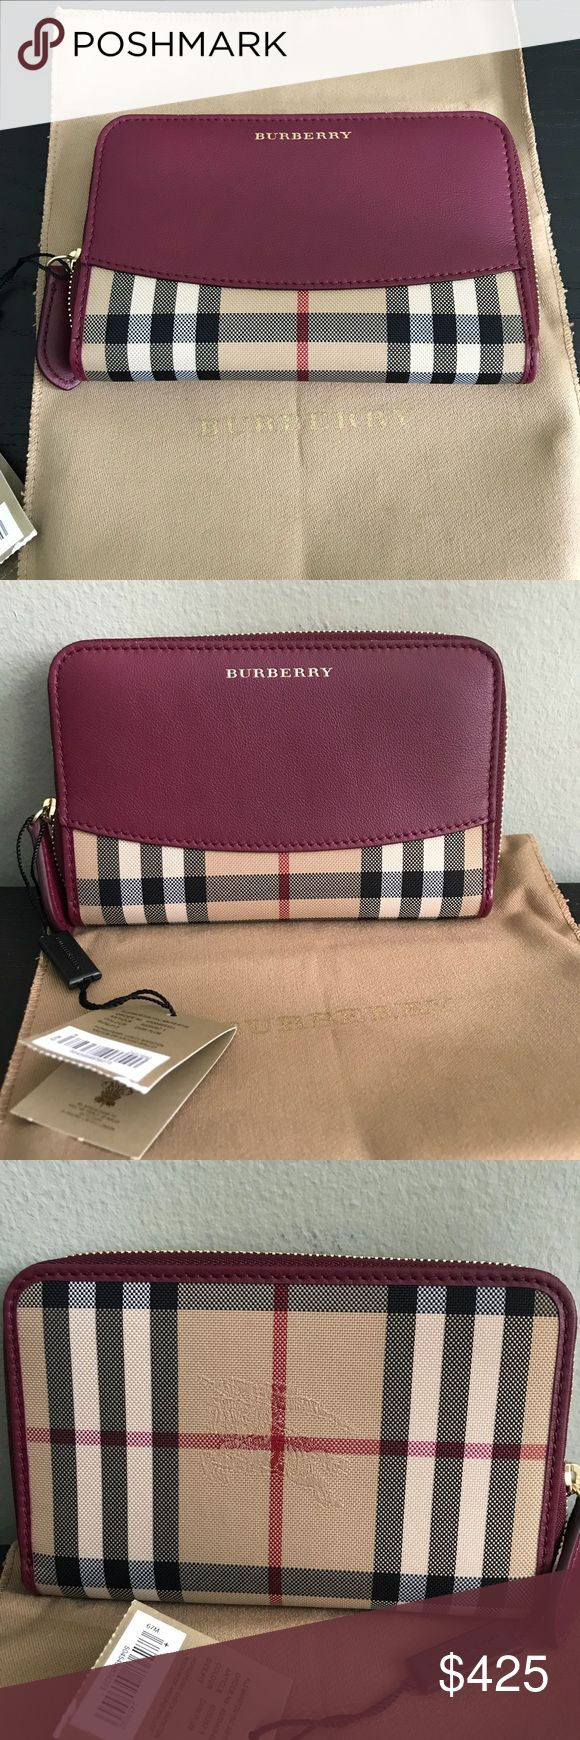 Burberry Marston Wallet Classic check canvas and dark plum leather . 10 credit card compartments , slot for change with a zipper . Another compartment for bills . Great size to fit into a smaller bag . Brand new with tag , comes with a dust bag and Burberry shopping bag . Burberry Bags Wallets